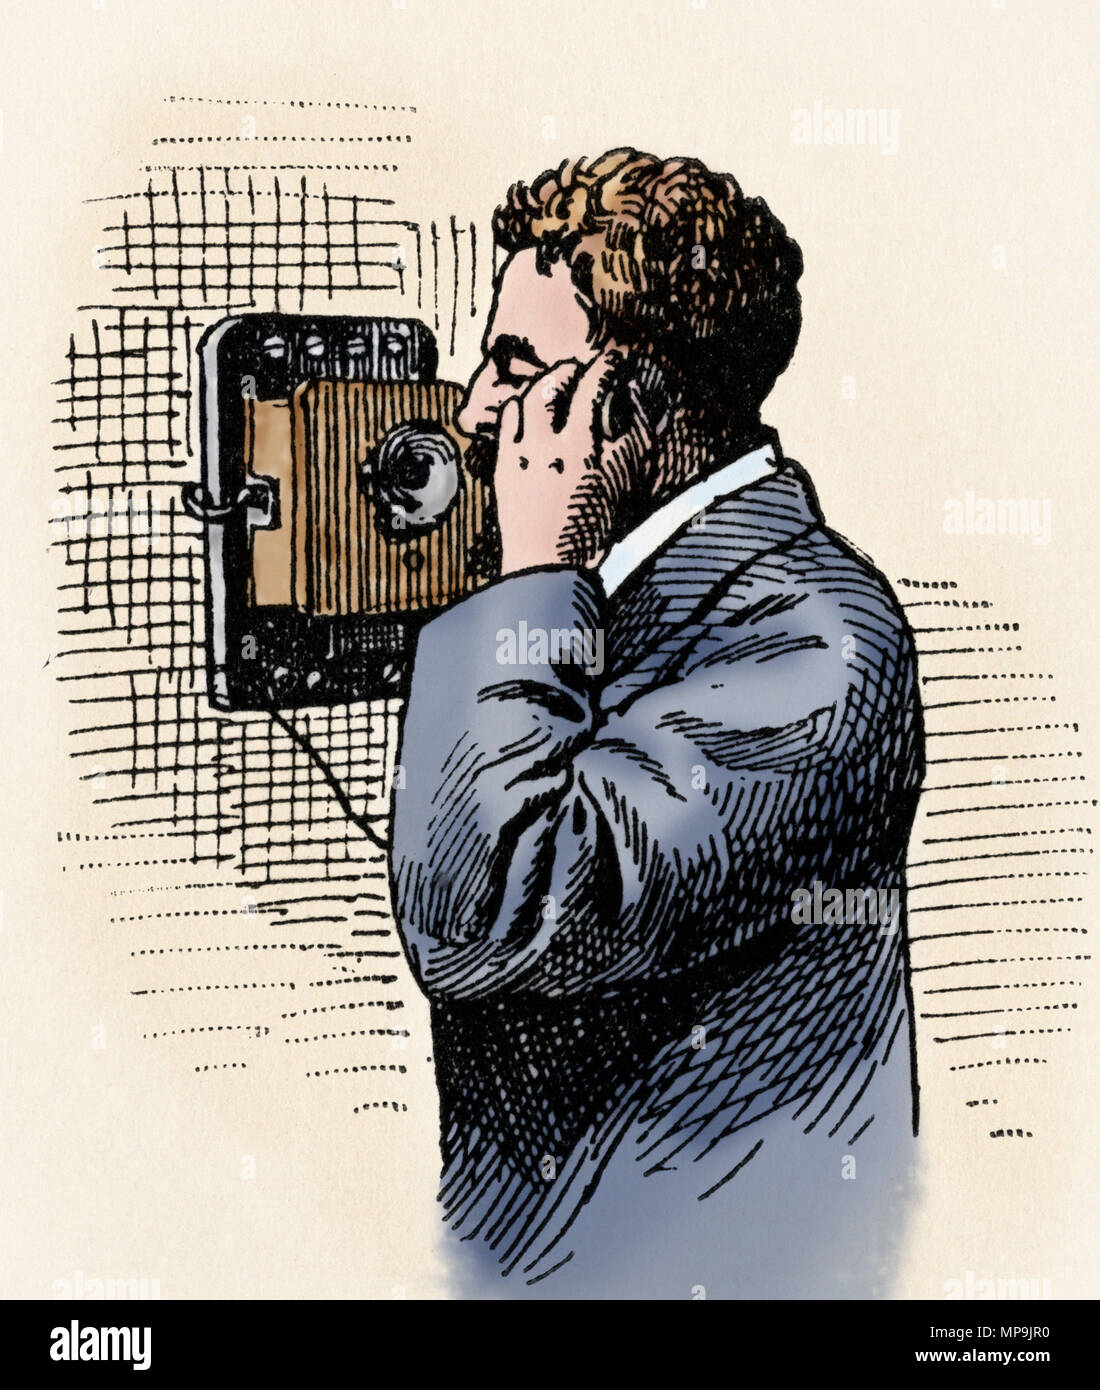 Early wall-mounted telephone, 1800s. Digitally colored woodcut - Stock Image